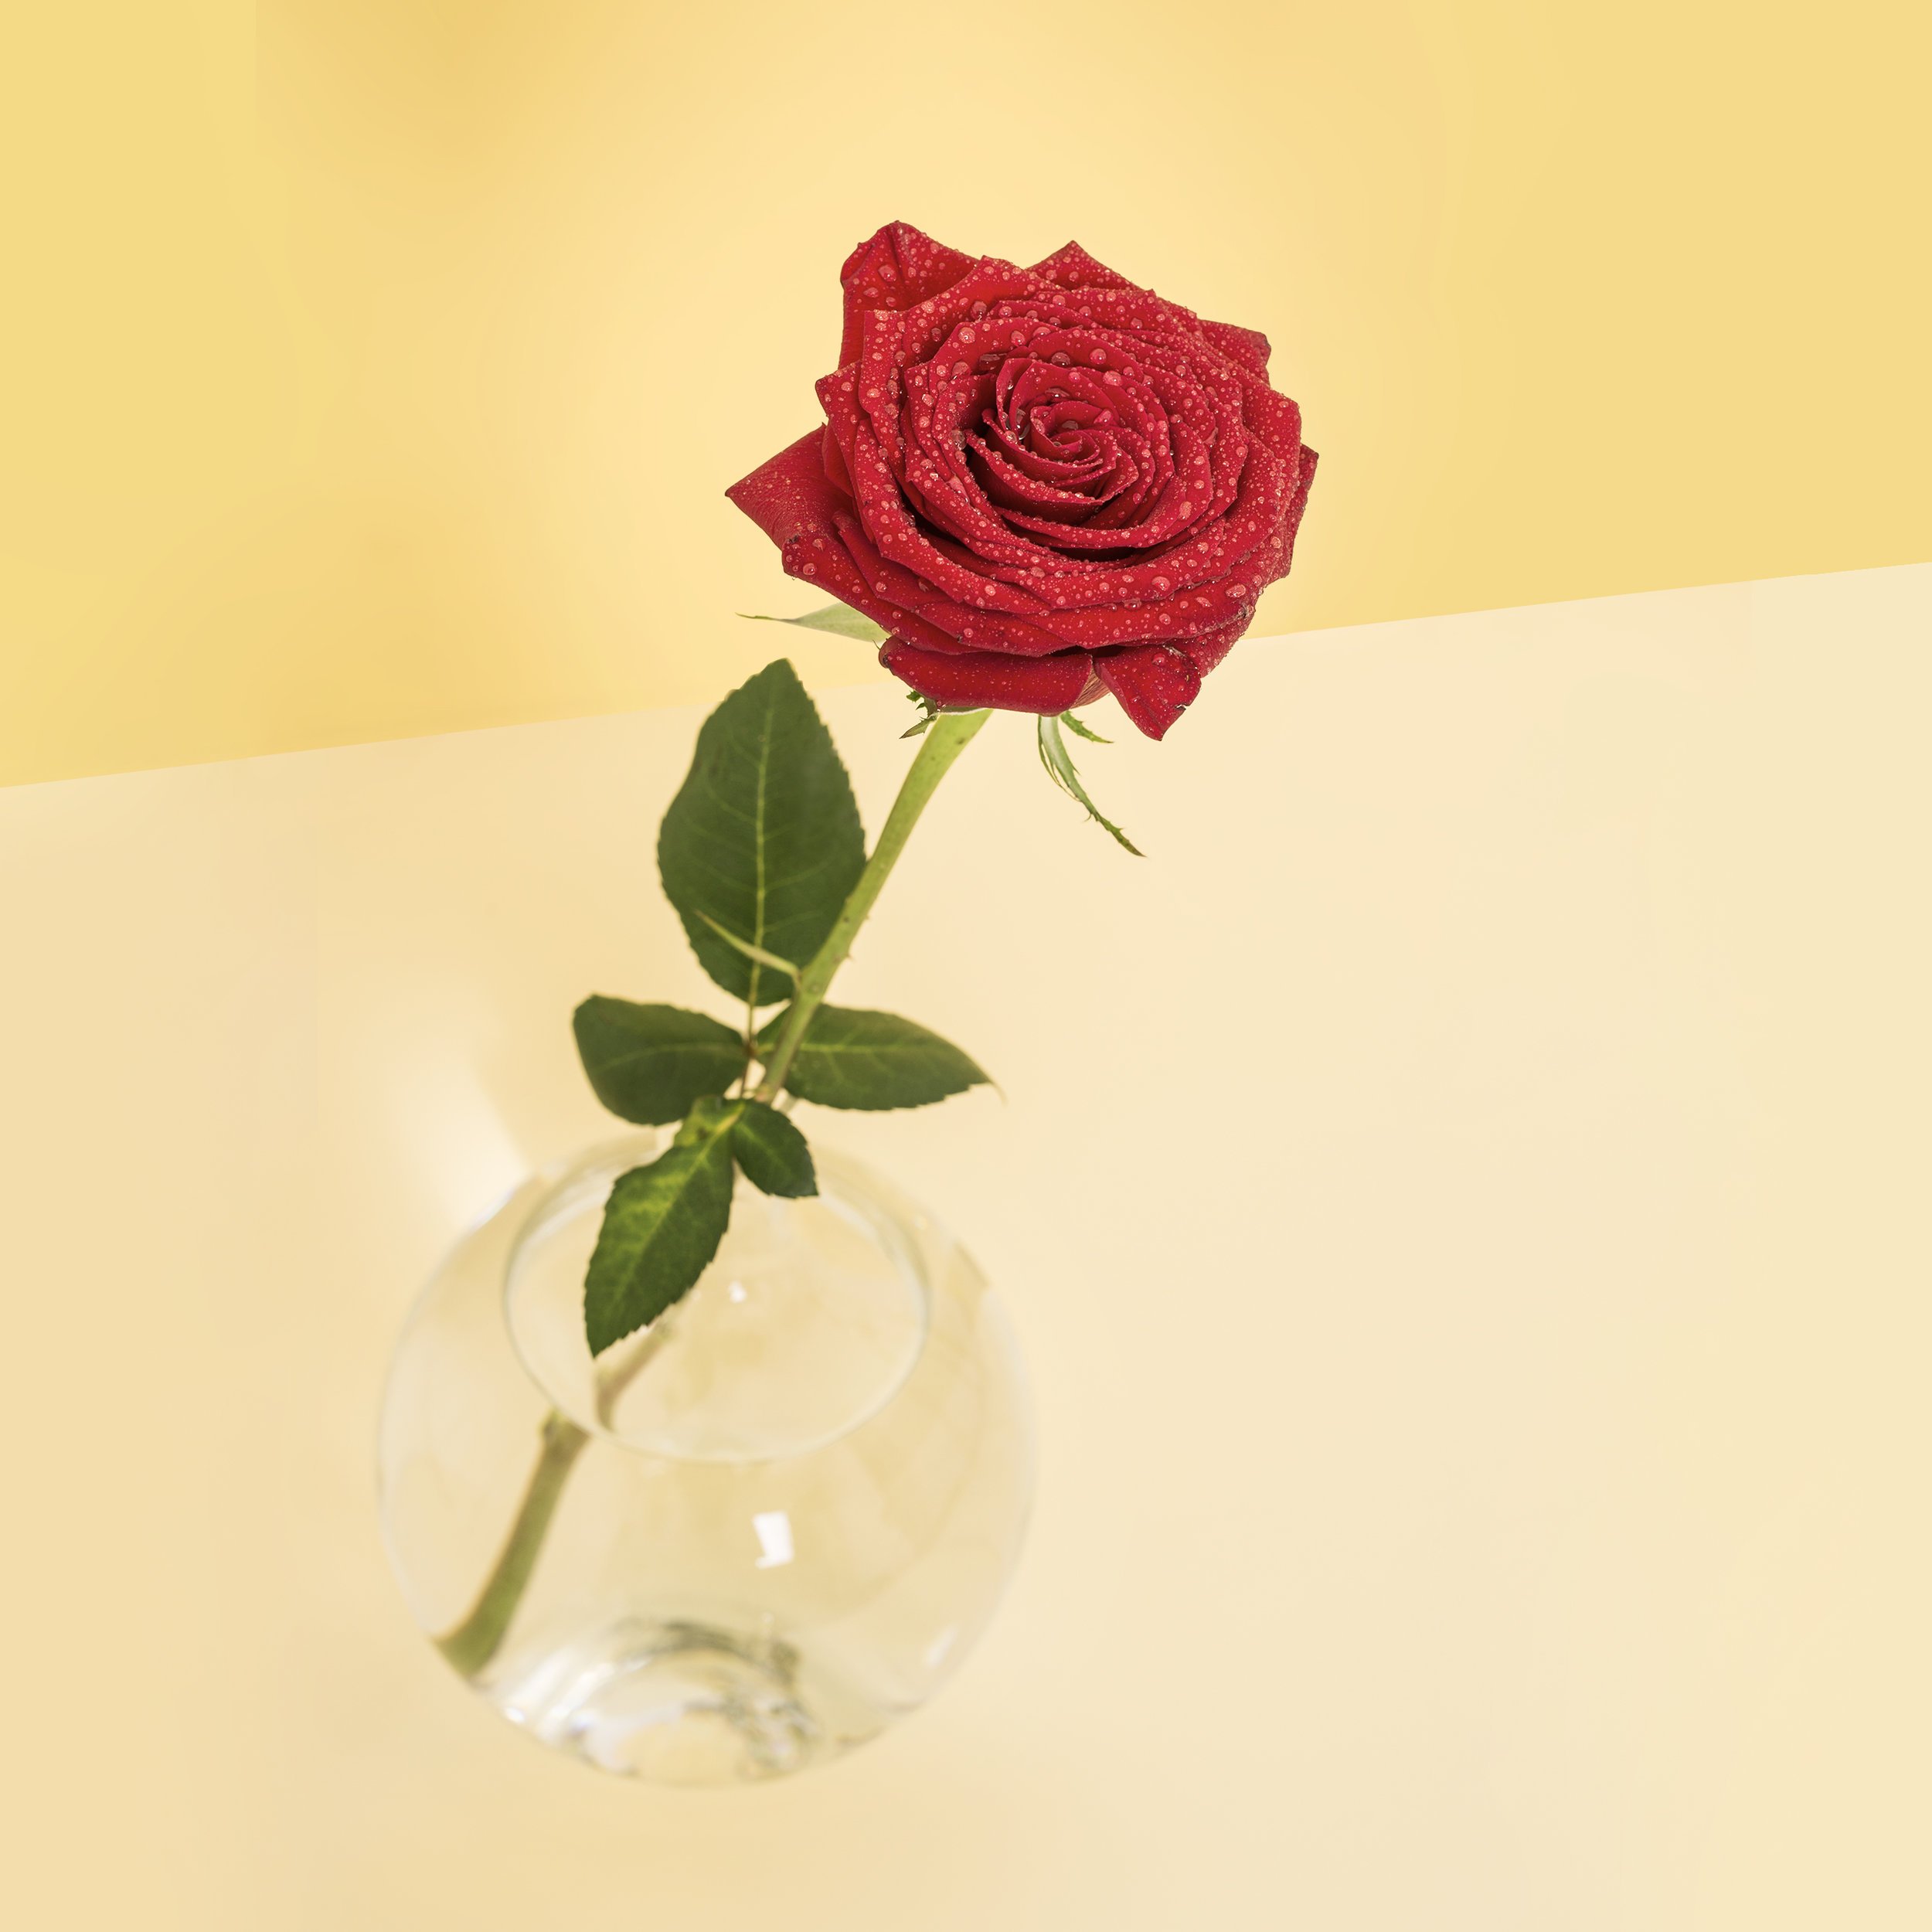 April 29th - Peace Rose Day